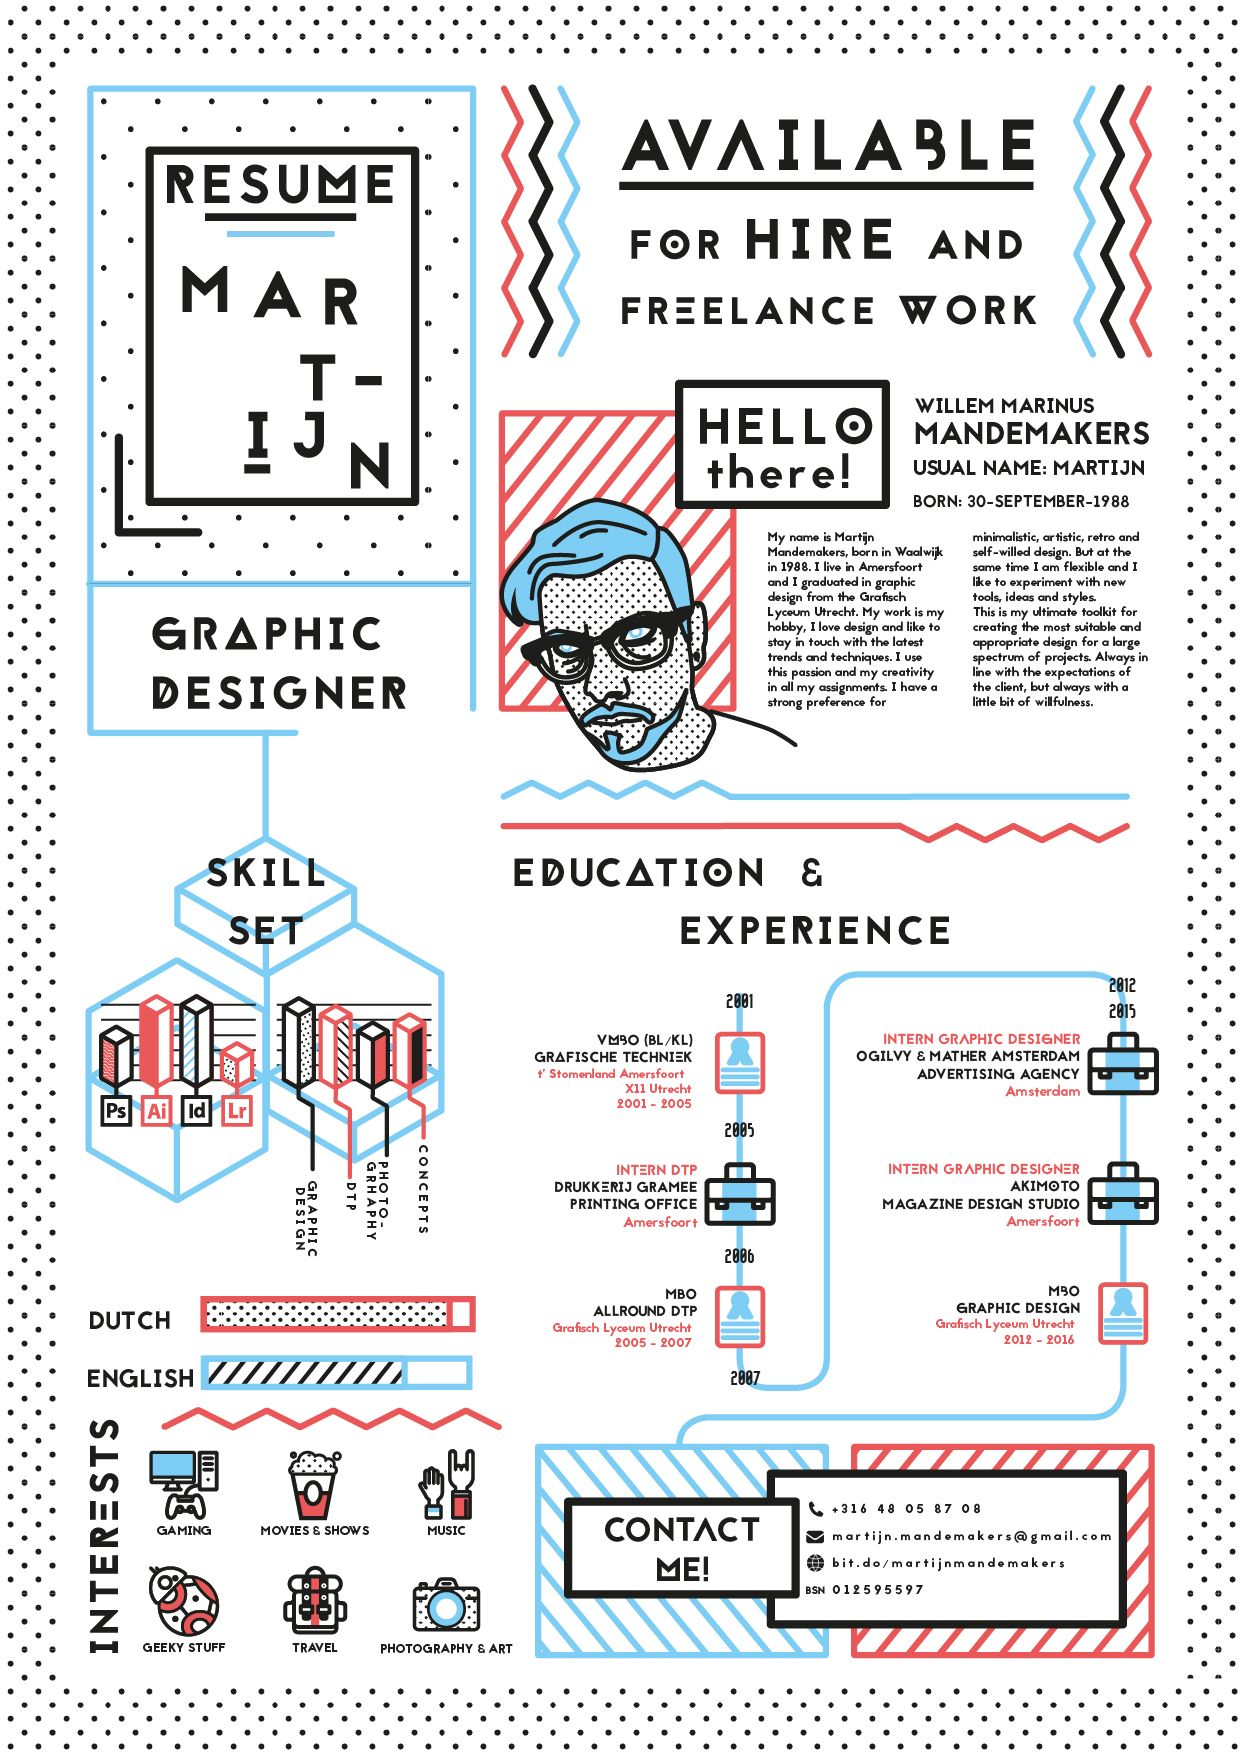 Graphic Designer Resume Templates Resume Graphic Designer Martijn Mandemakers Currently